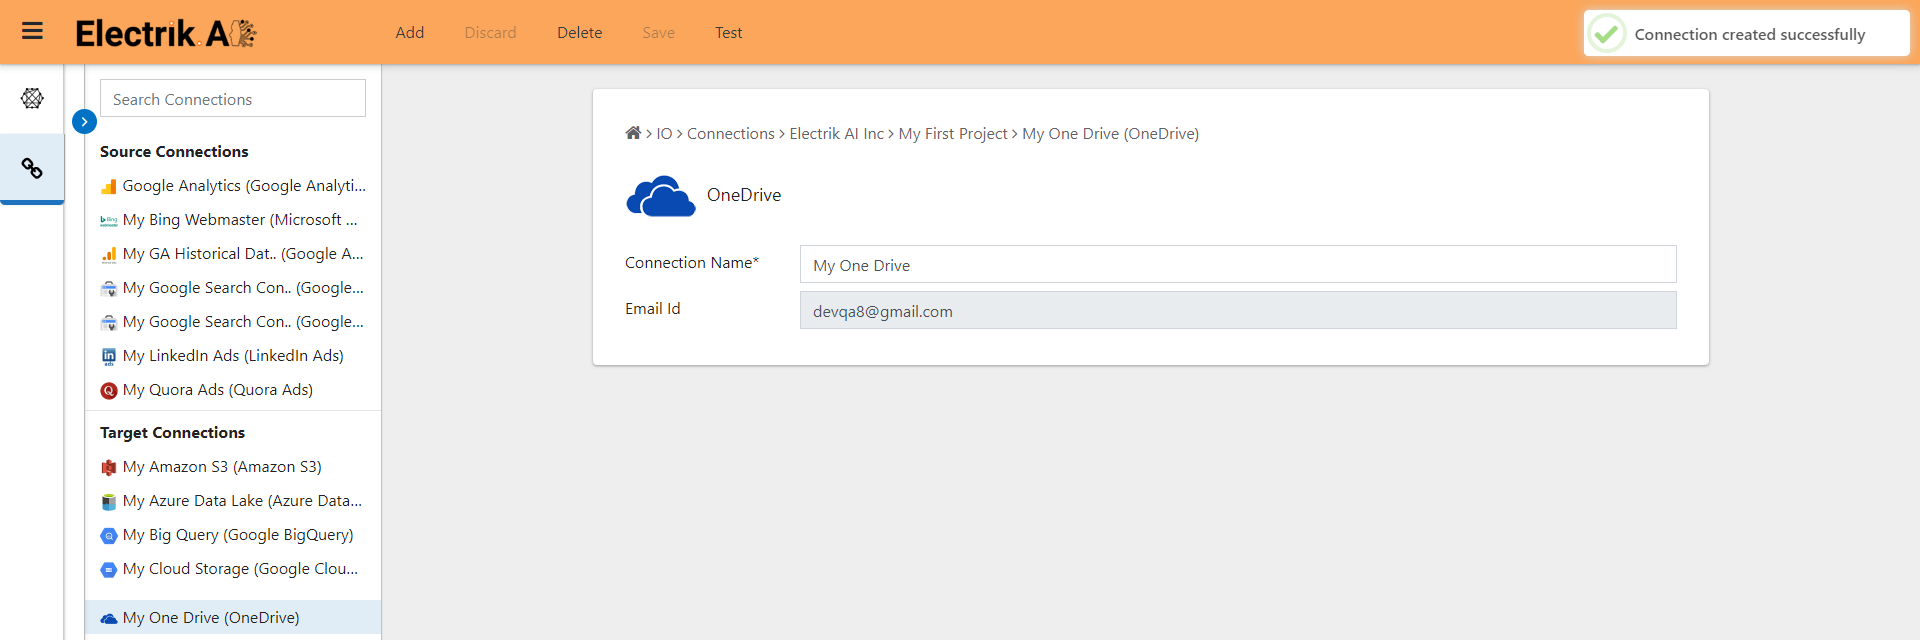 You have successfully created a Microsoft OneDrive connection-ElectrikAI